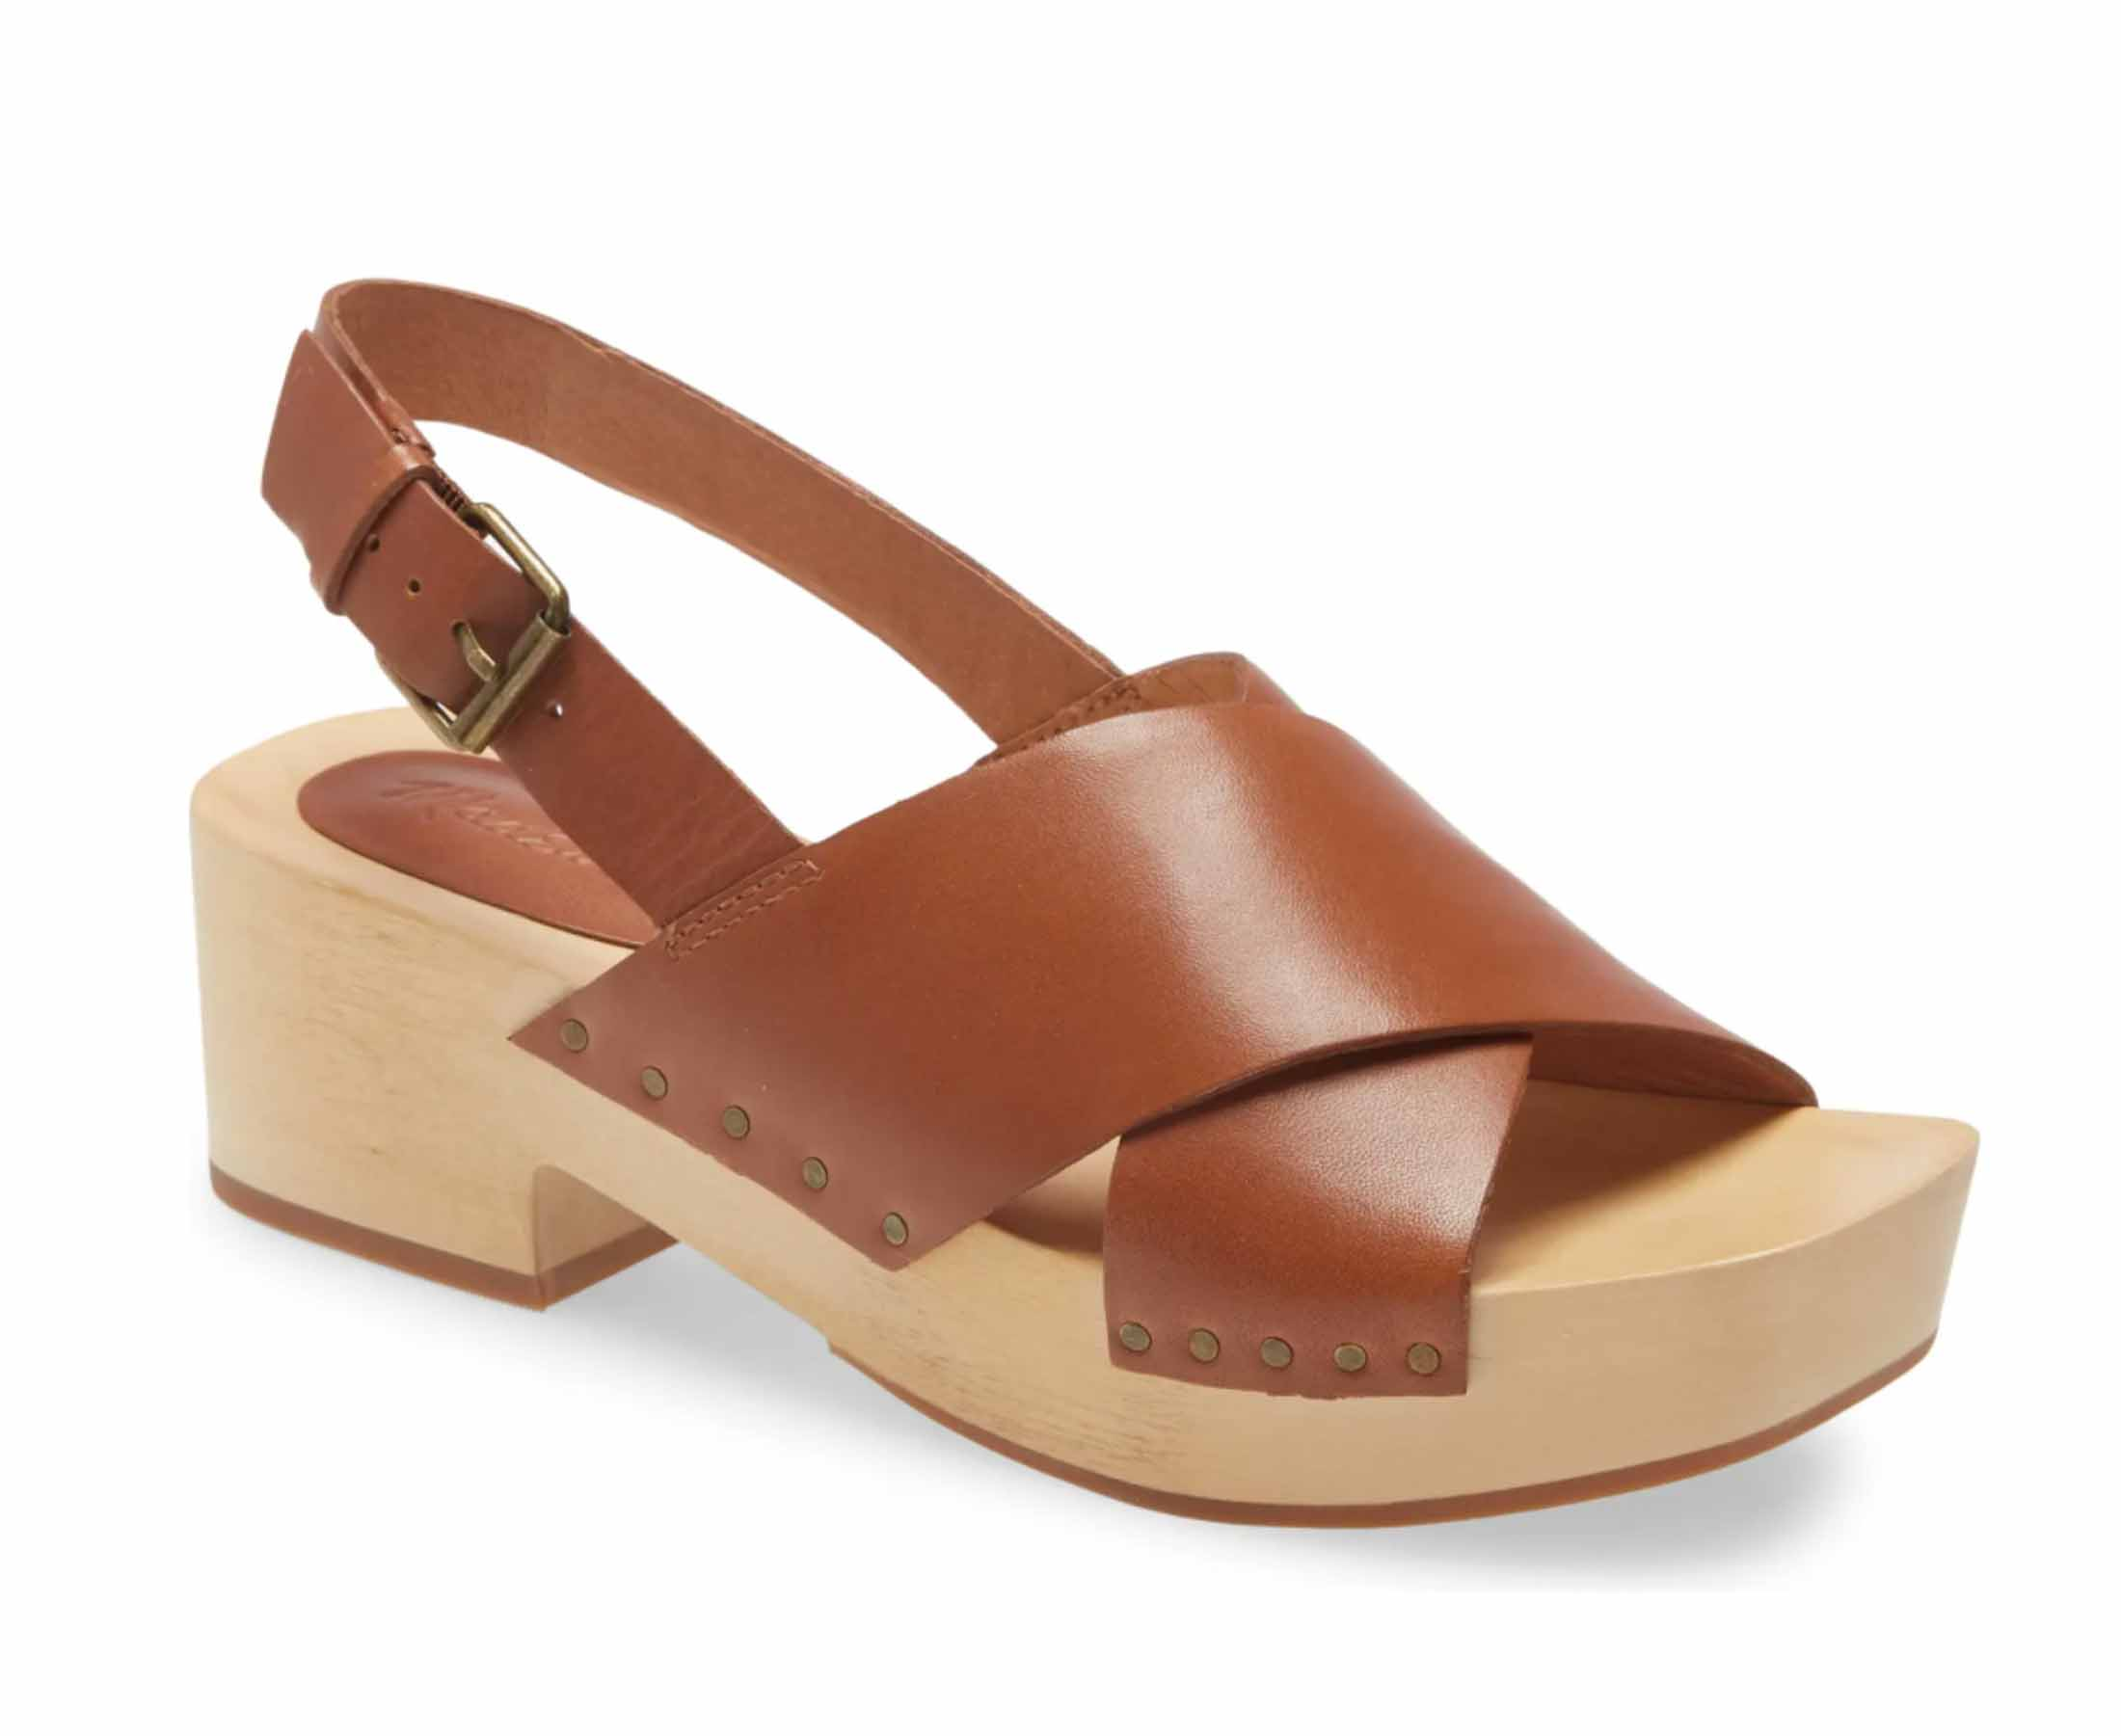 Clog sandals. You either love 'em or hate 'em, but I LOVE. We're eyeing a stylish mix of classic, cute & comfy. Think: No.6, MIA & Swedish Hasbeens.